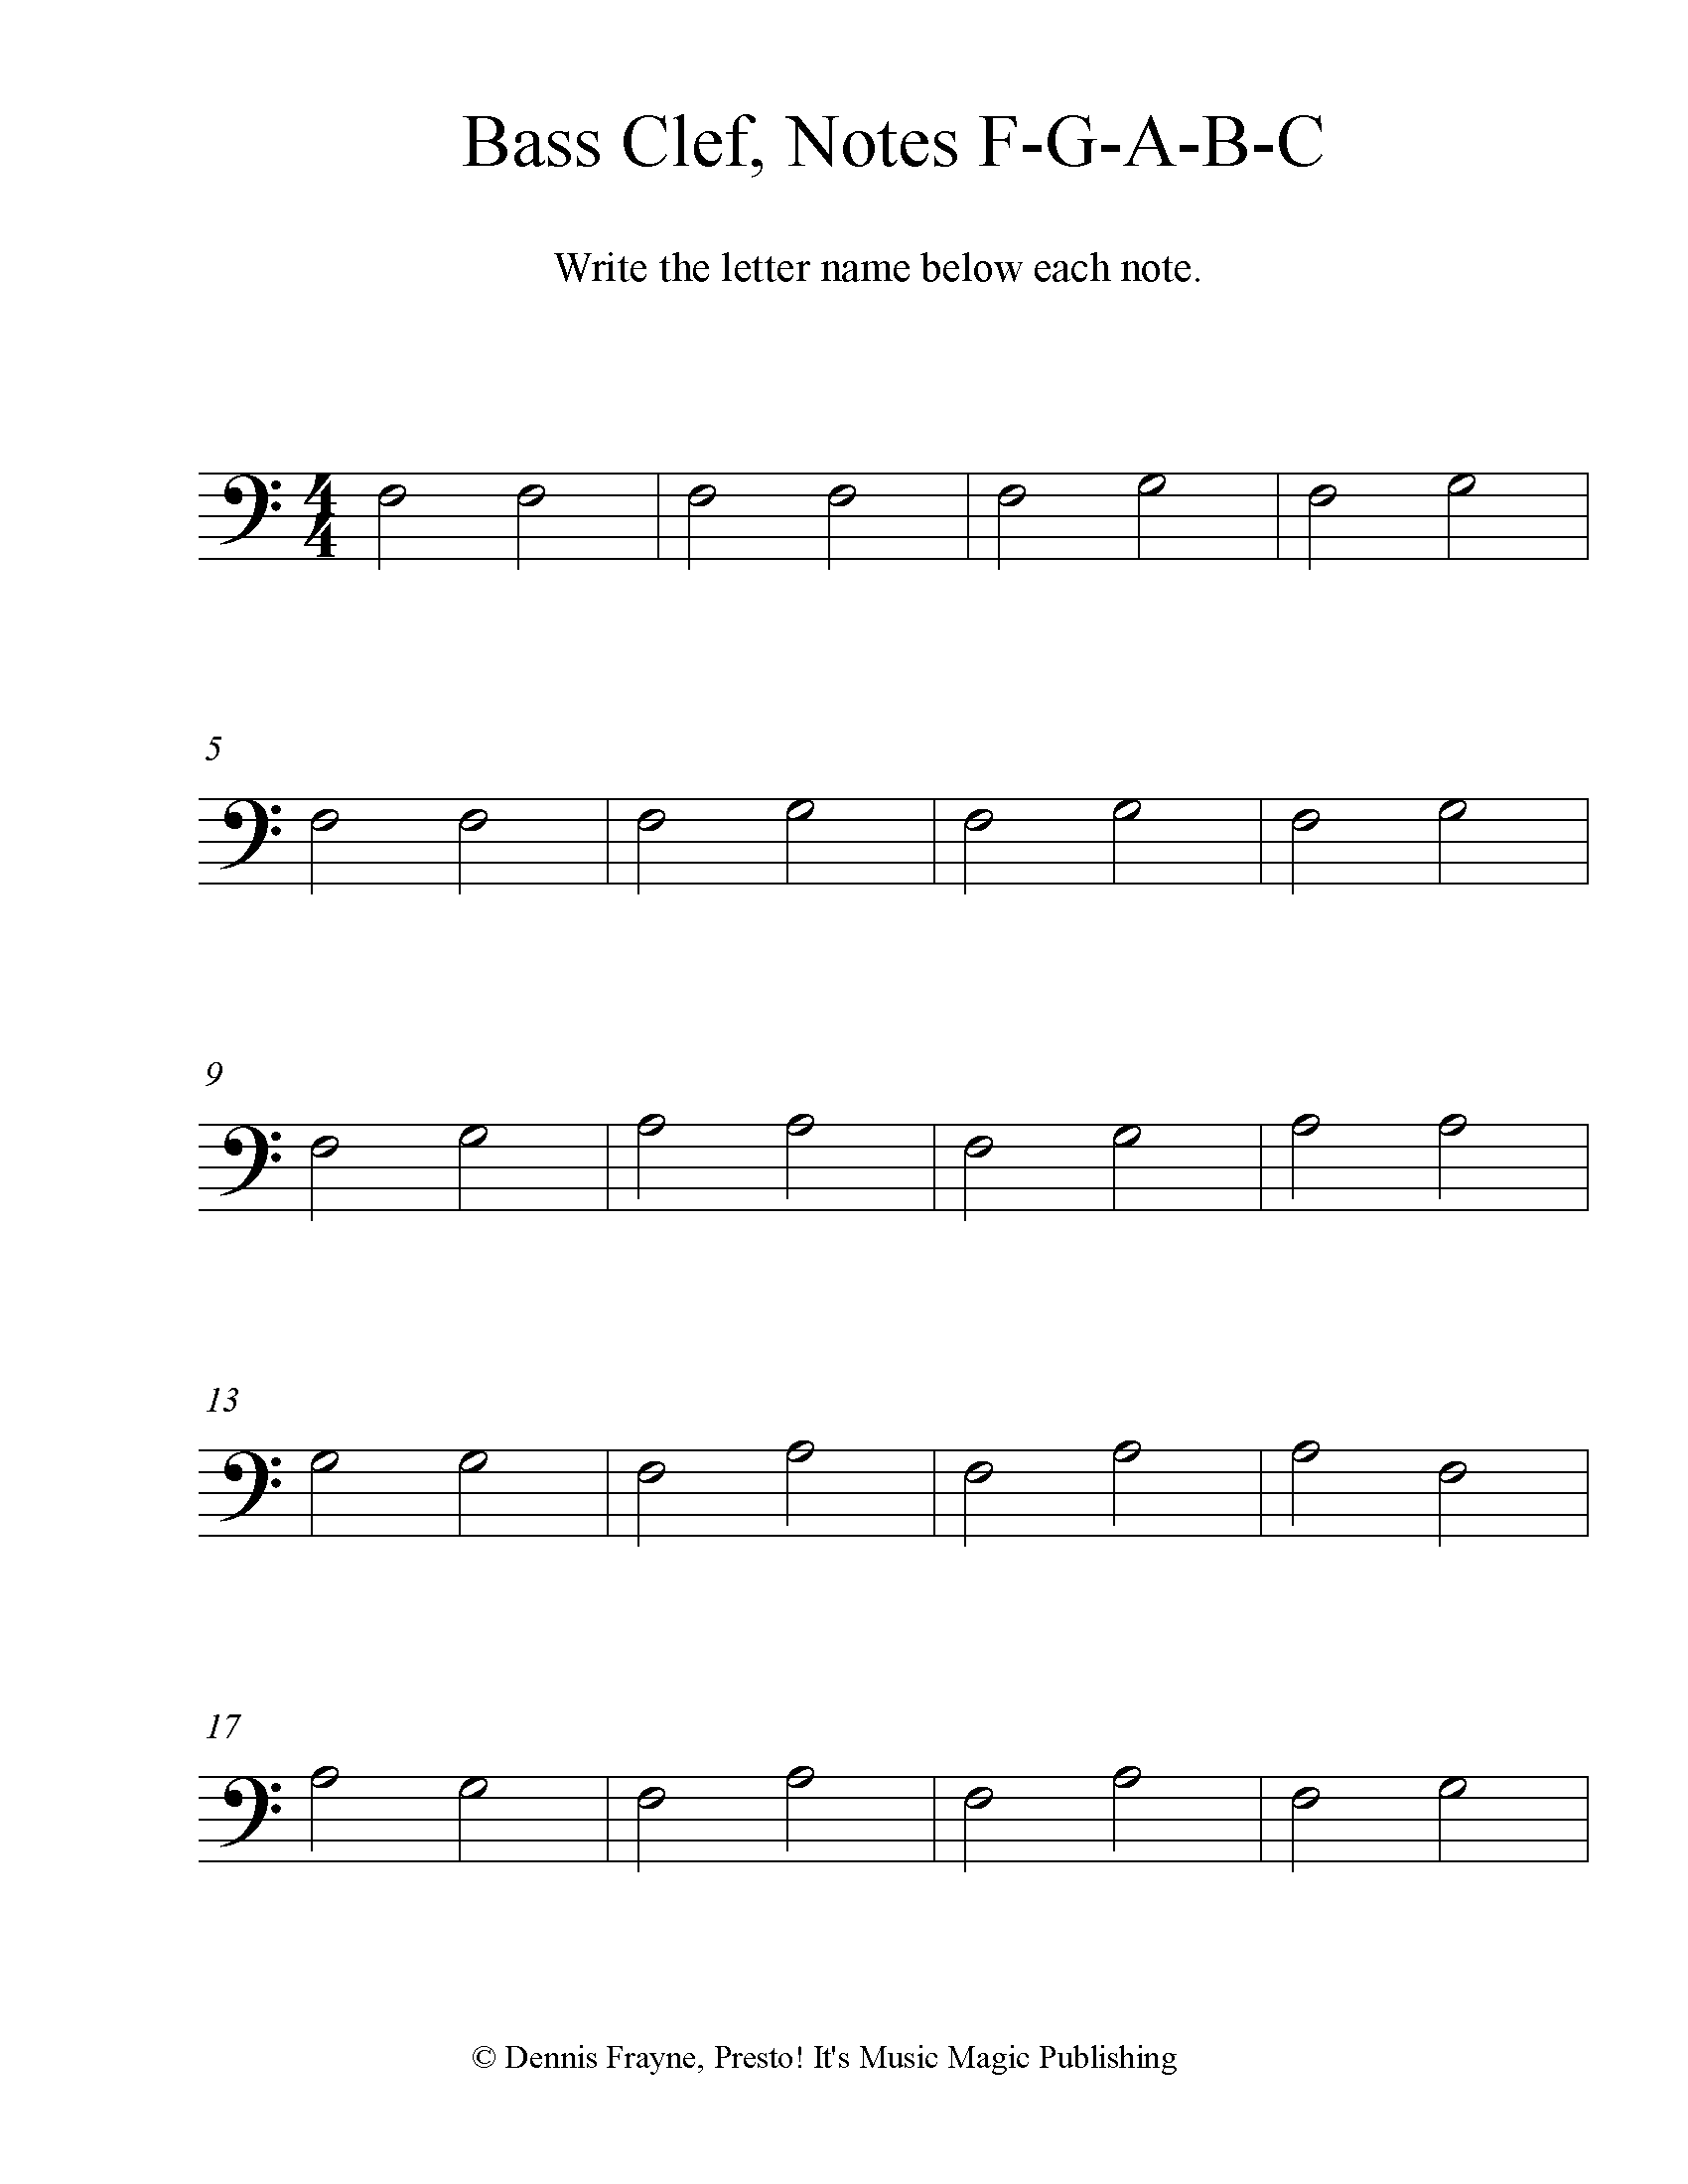 Bass Clef Note Identification Practice Worksheet, Level 1 4 pages